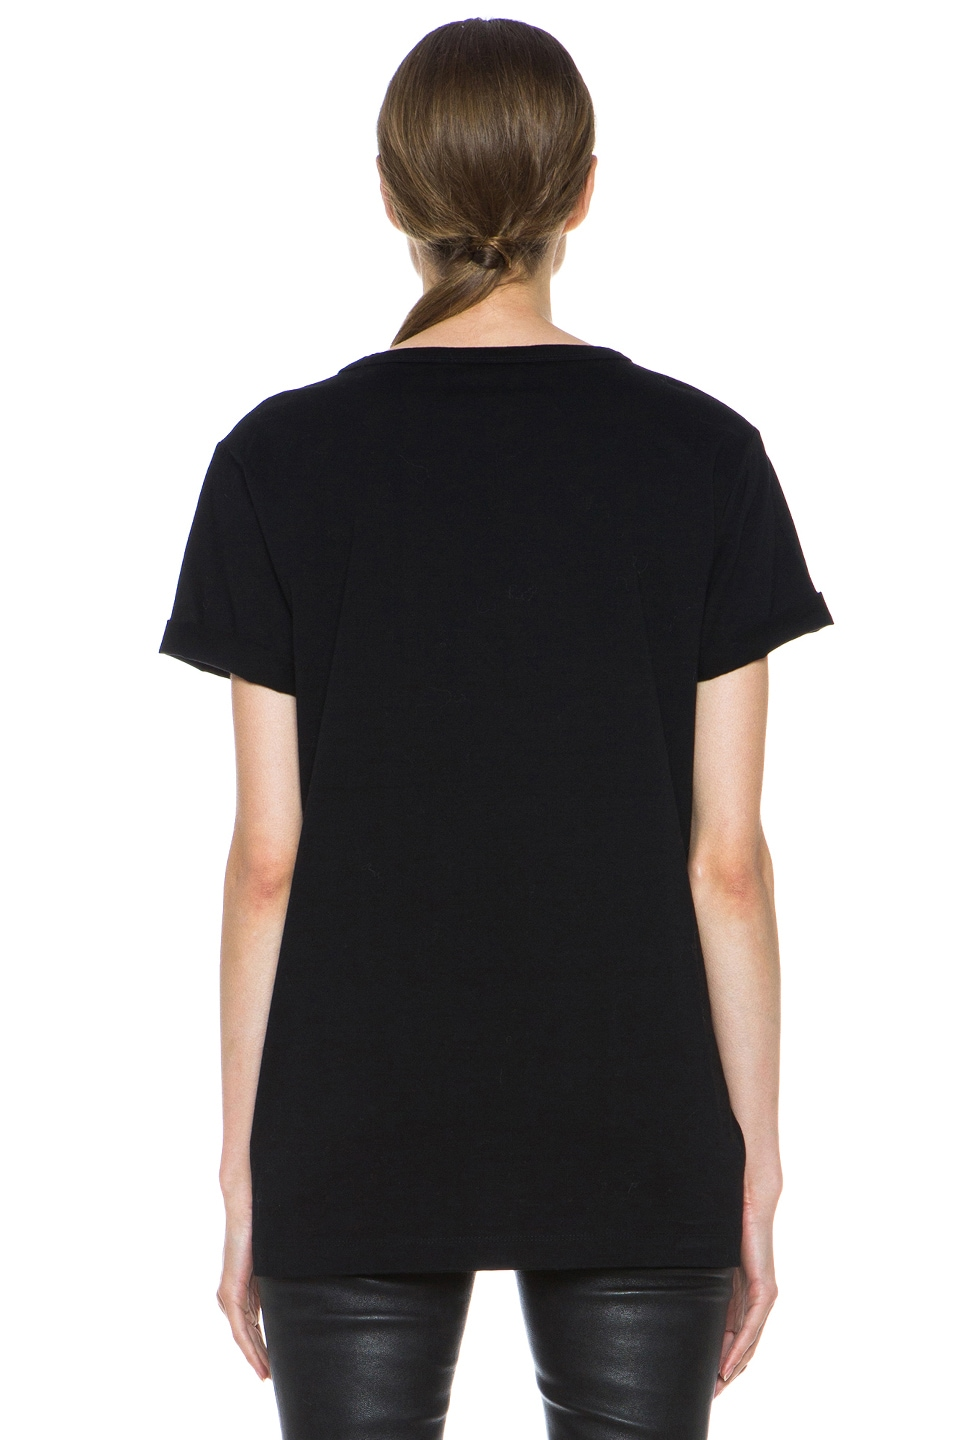 Image 4 of T by Alexander Wang Supima Jersey Tee with Leather Pocket in Black